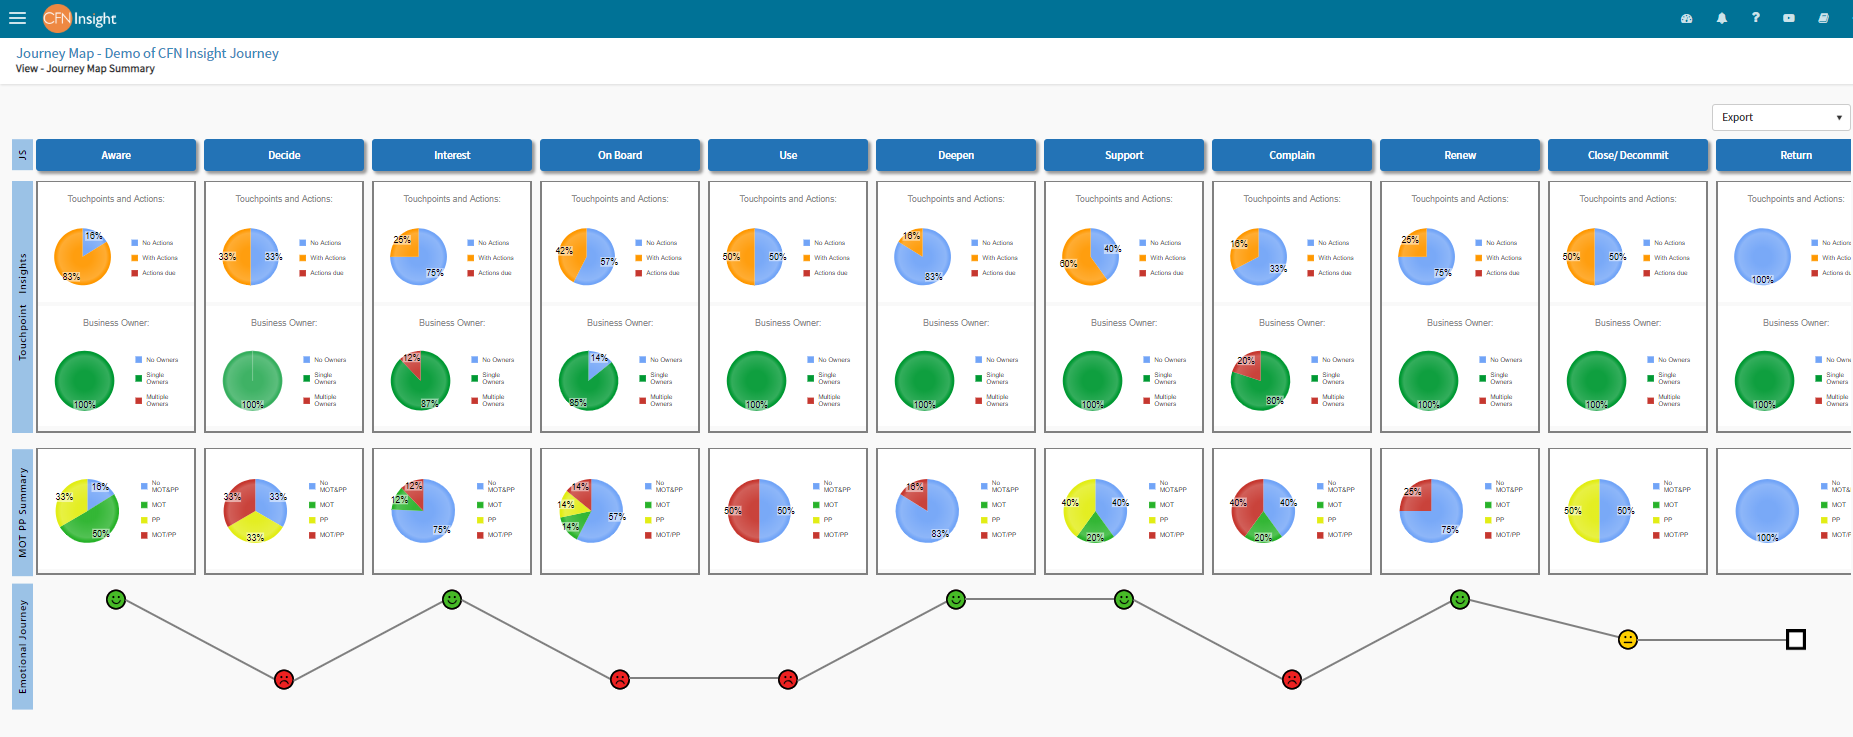 Journey Mapping customer interactions improves Customer Experience